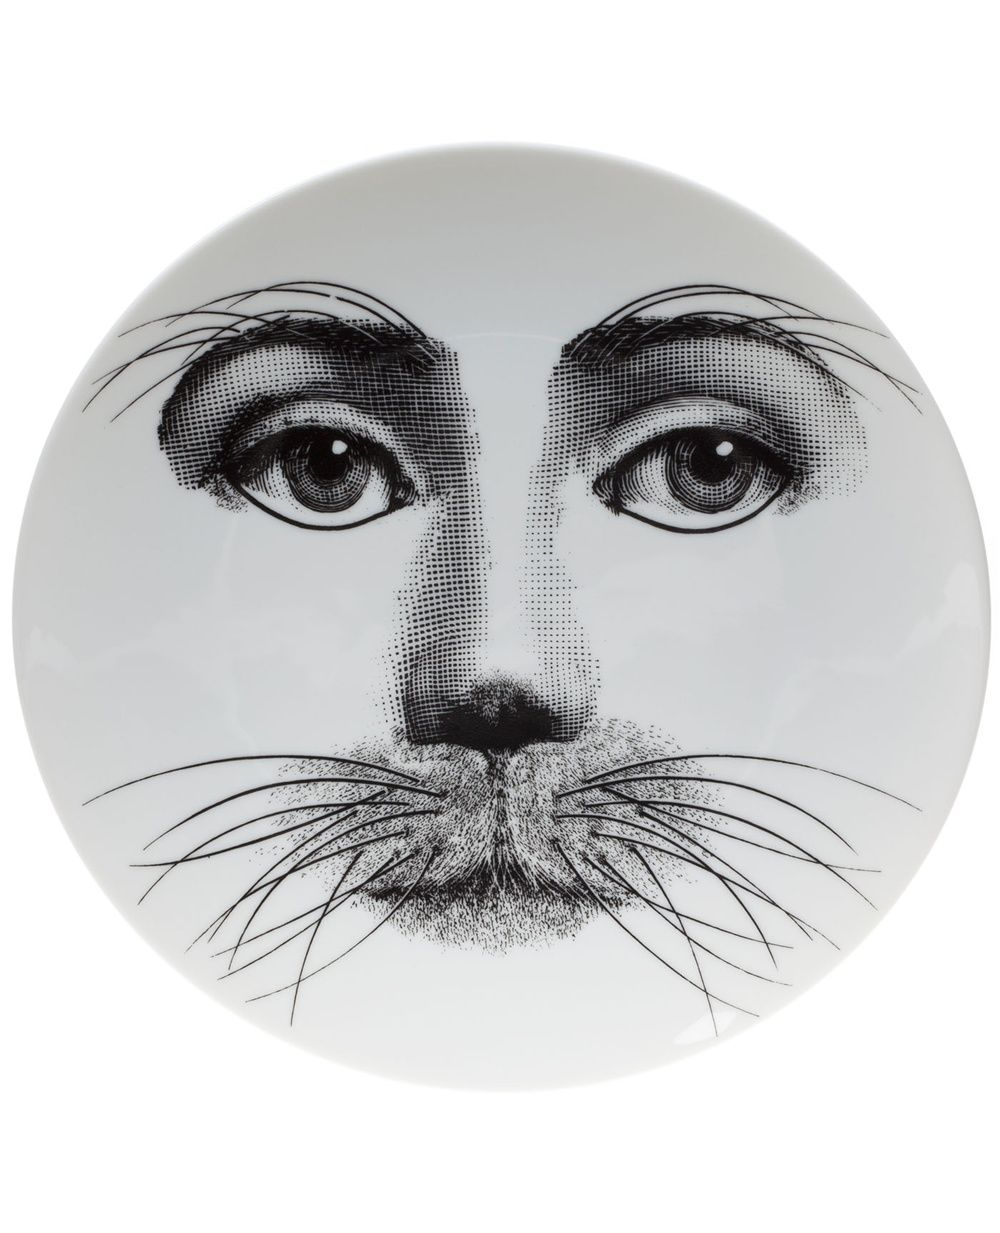 Google Image Result for http://nunette.files.wordpress.com/2011/12/fornasetti-porcelain-wall-mount-10047567_262099_1000.jpg